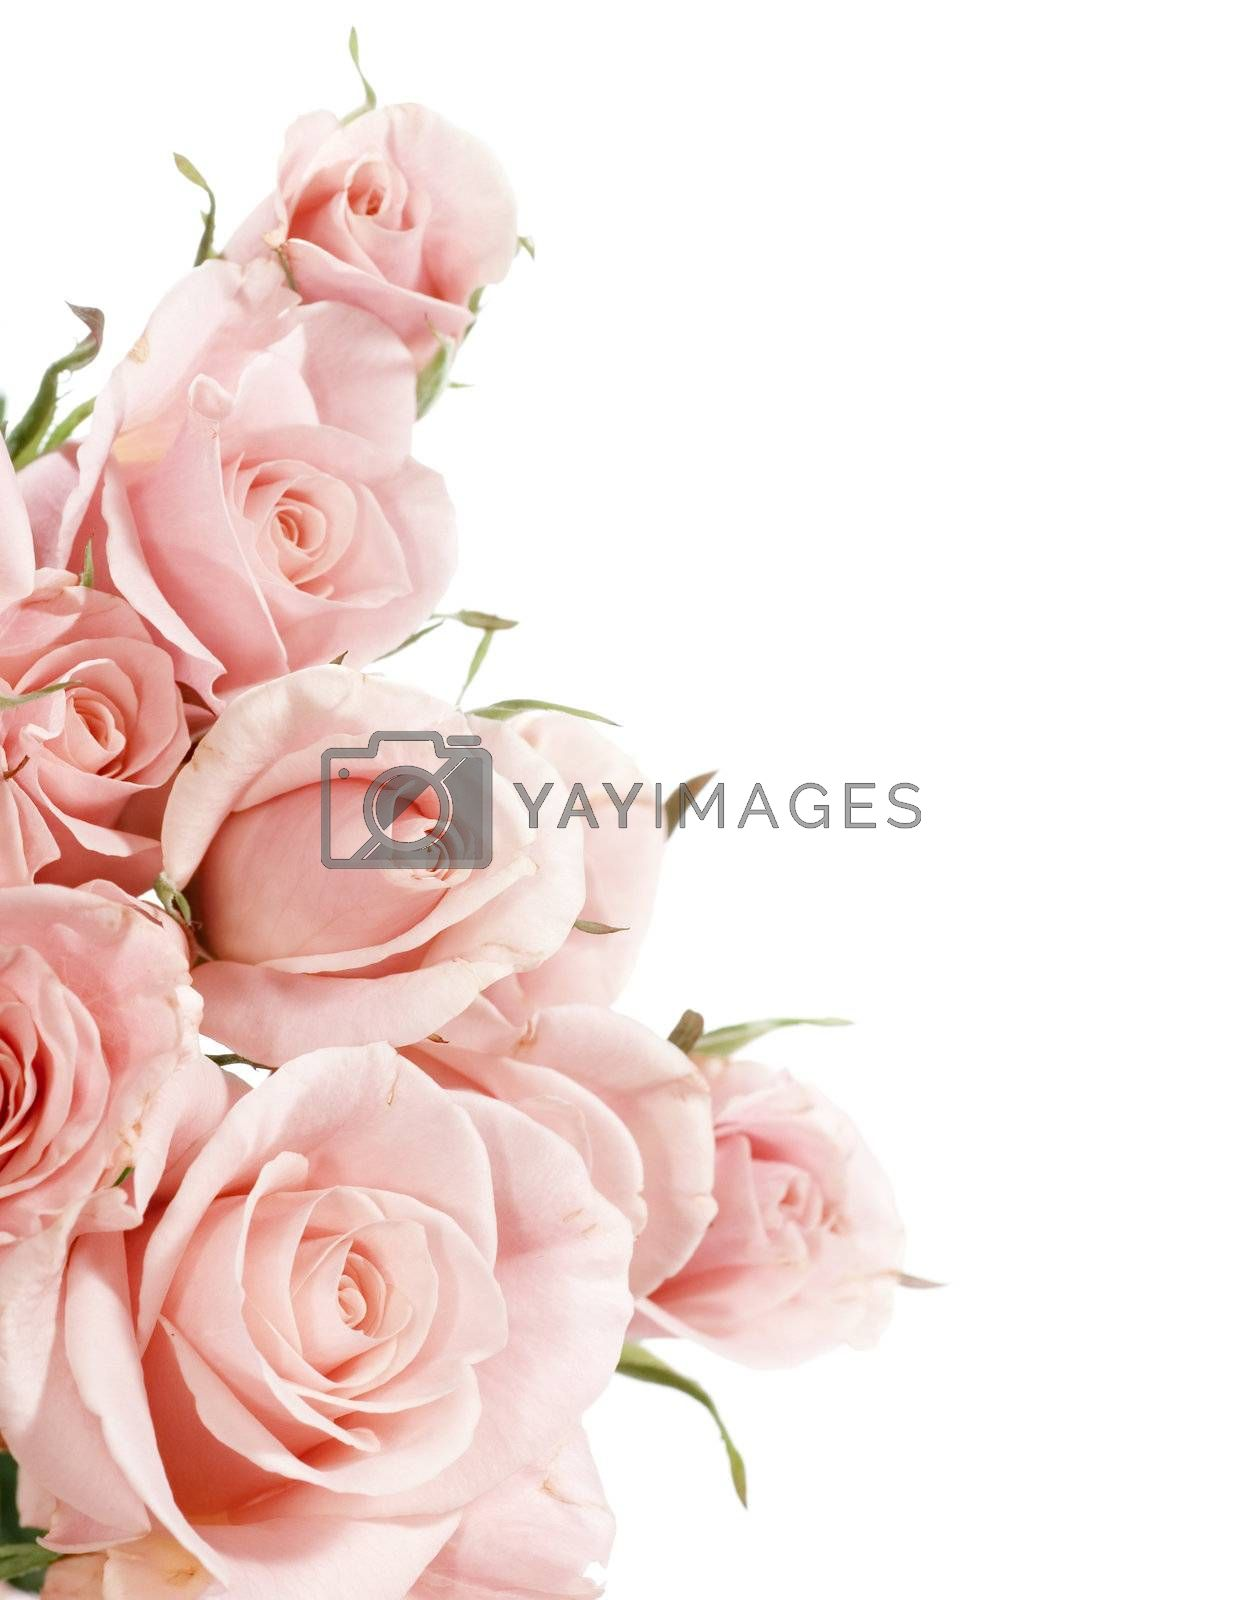 Beautiful Roses Border  by Subbotina Anna